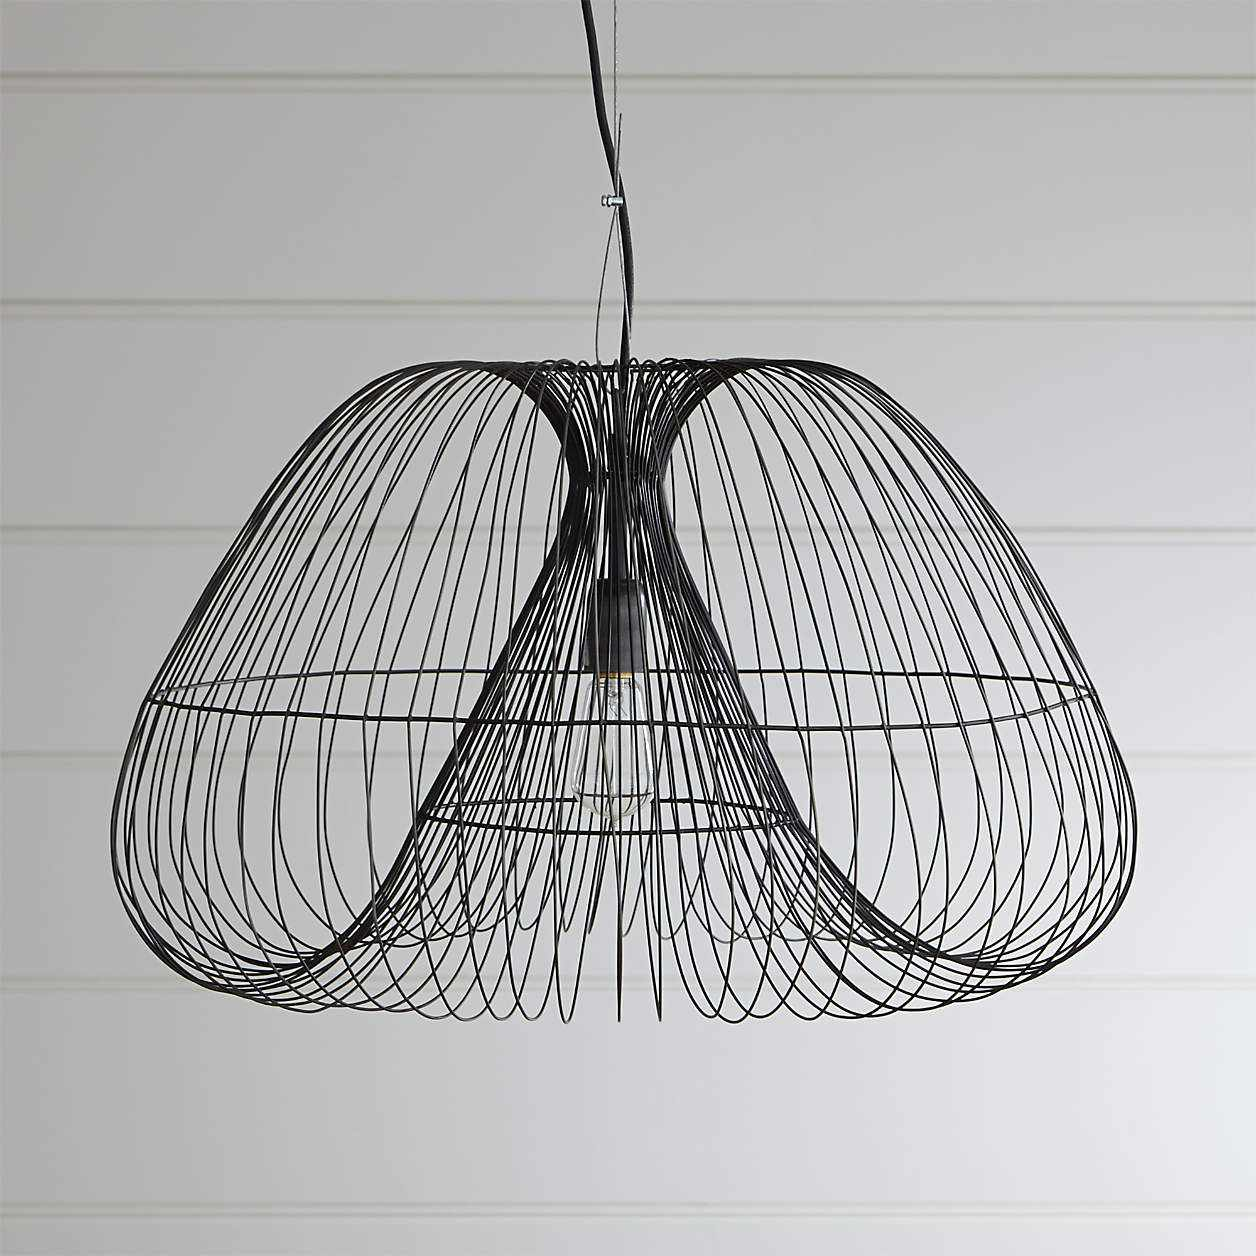 A contemporary black wire chandelier, currently for sale at Crate & Barrel